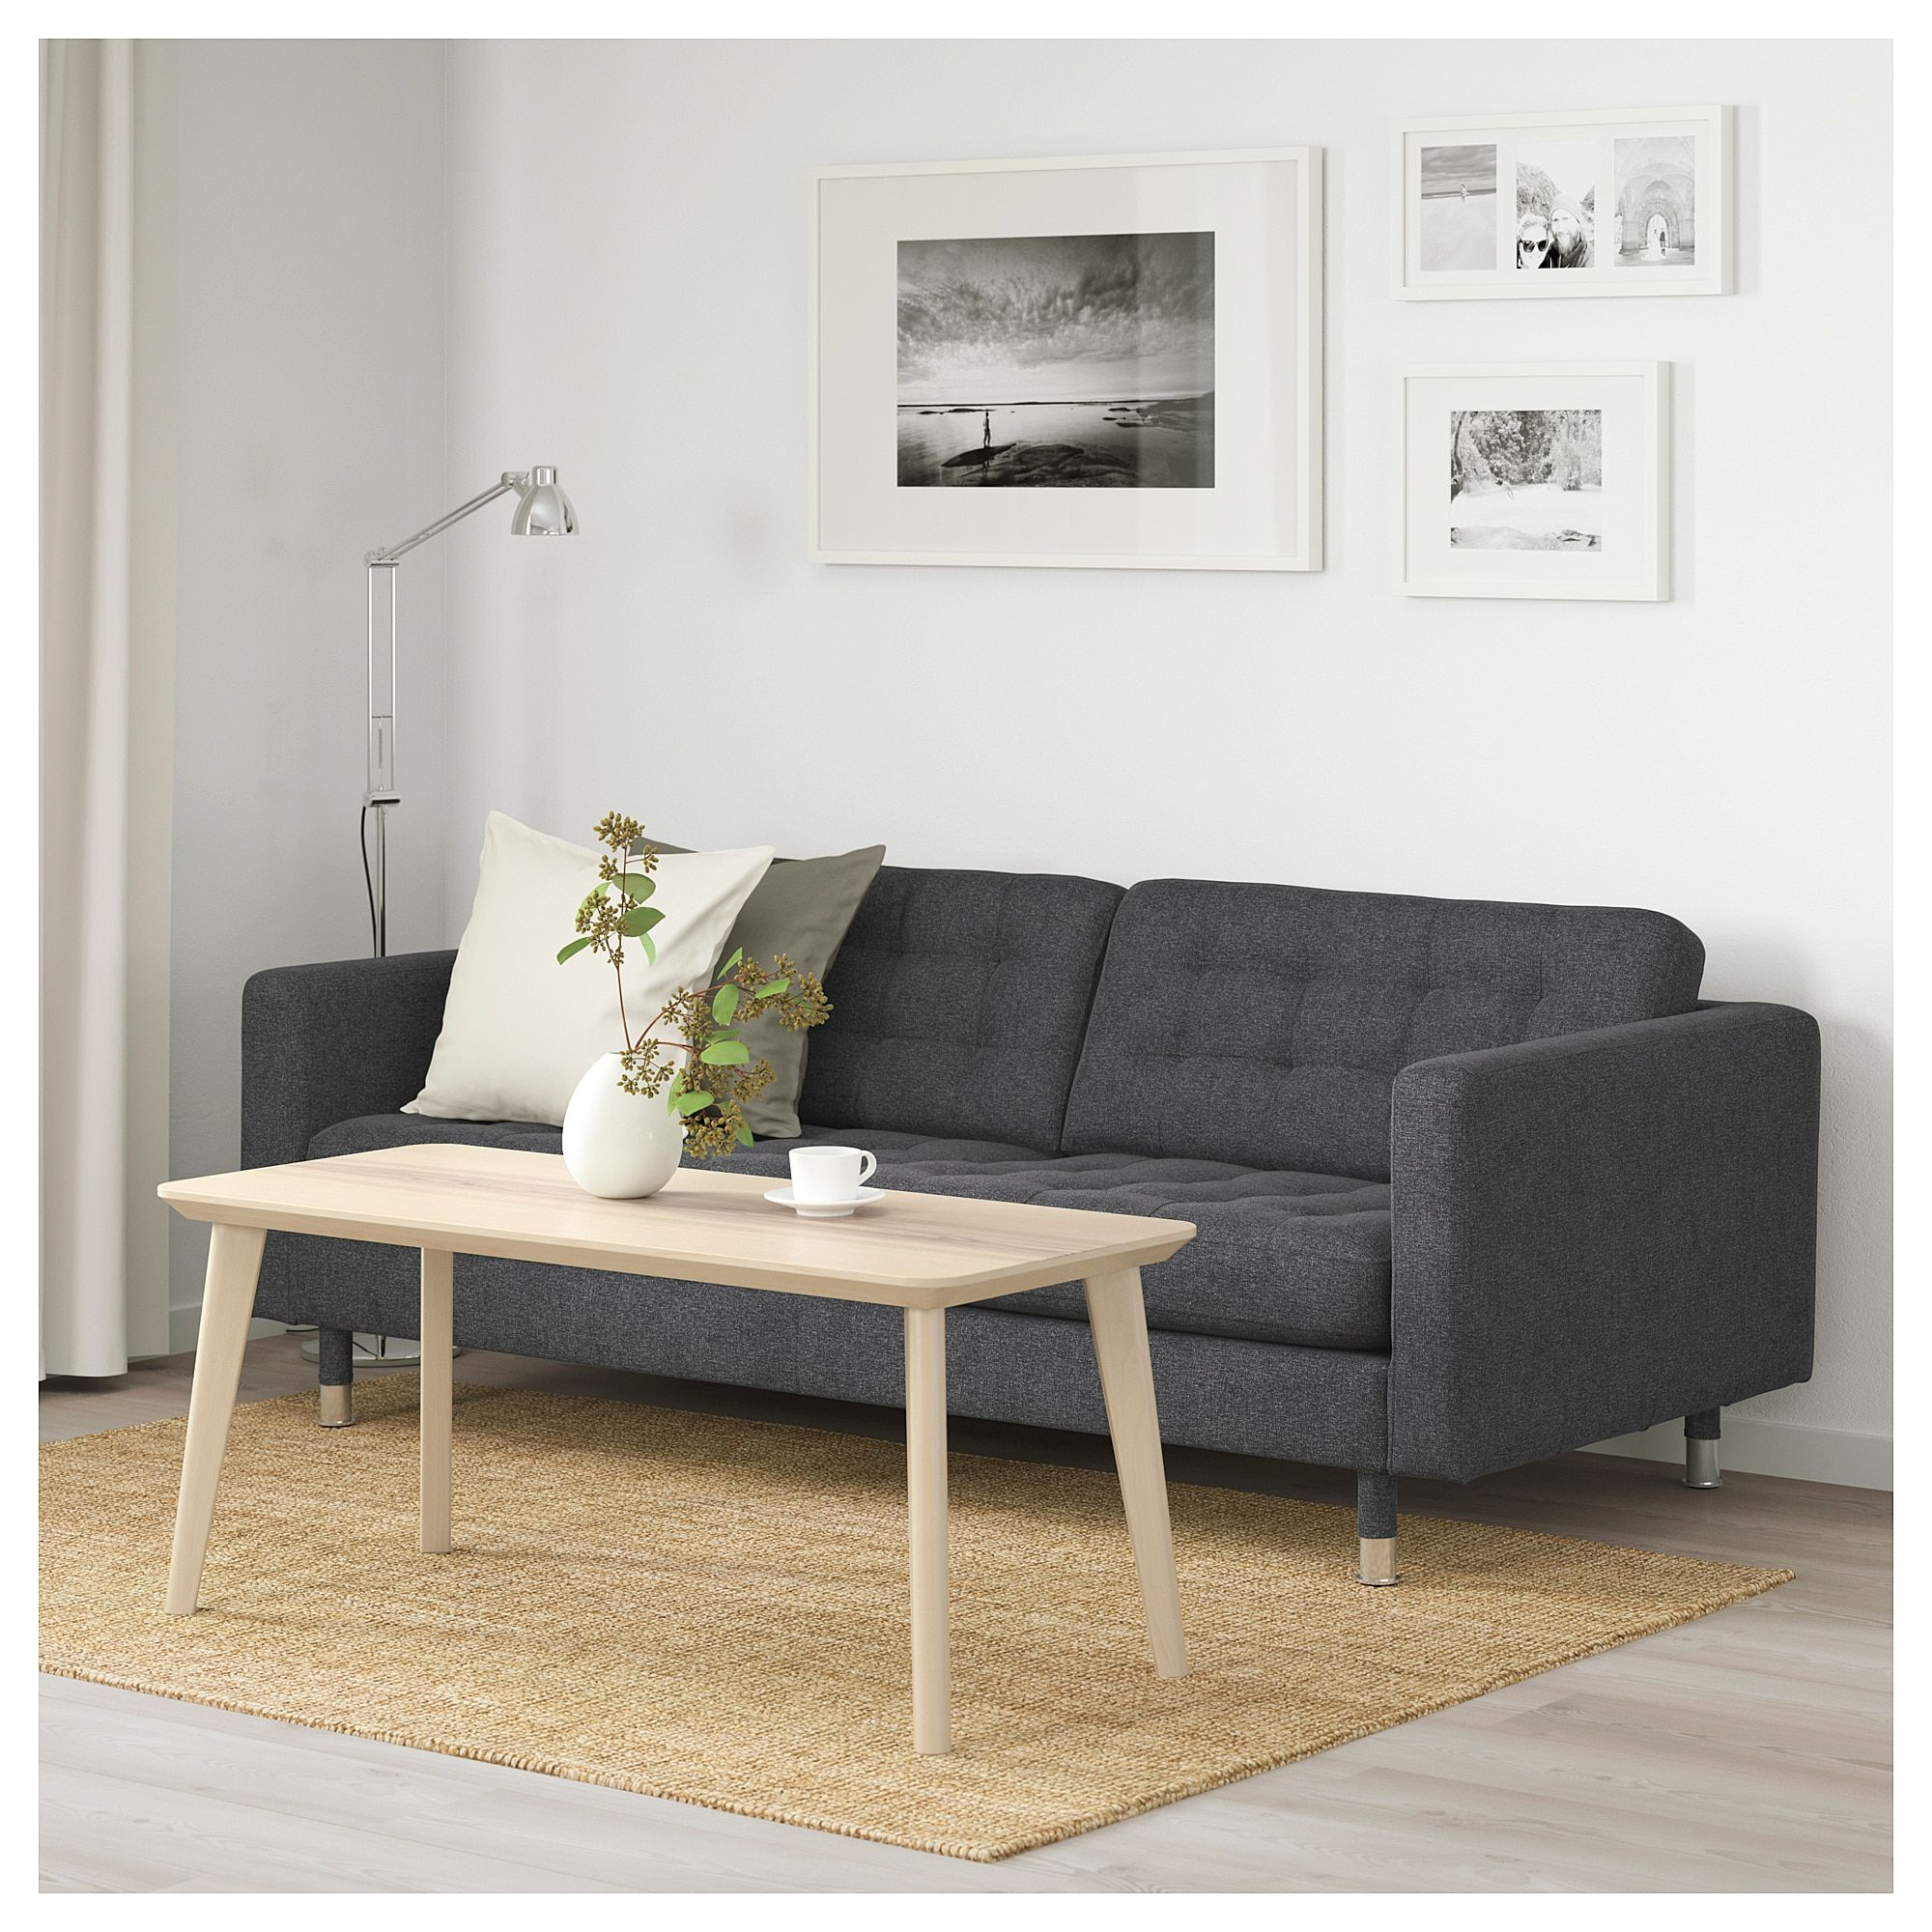 Klassische Sofas You Can Assemble Ikea Landskrona Sofa Gunnared Dark Gray Metal 1 Living Room